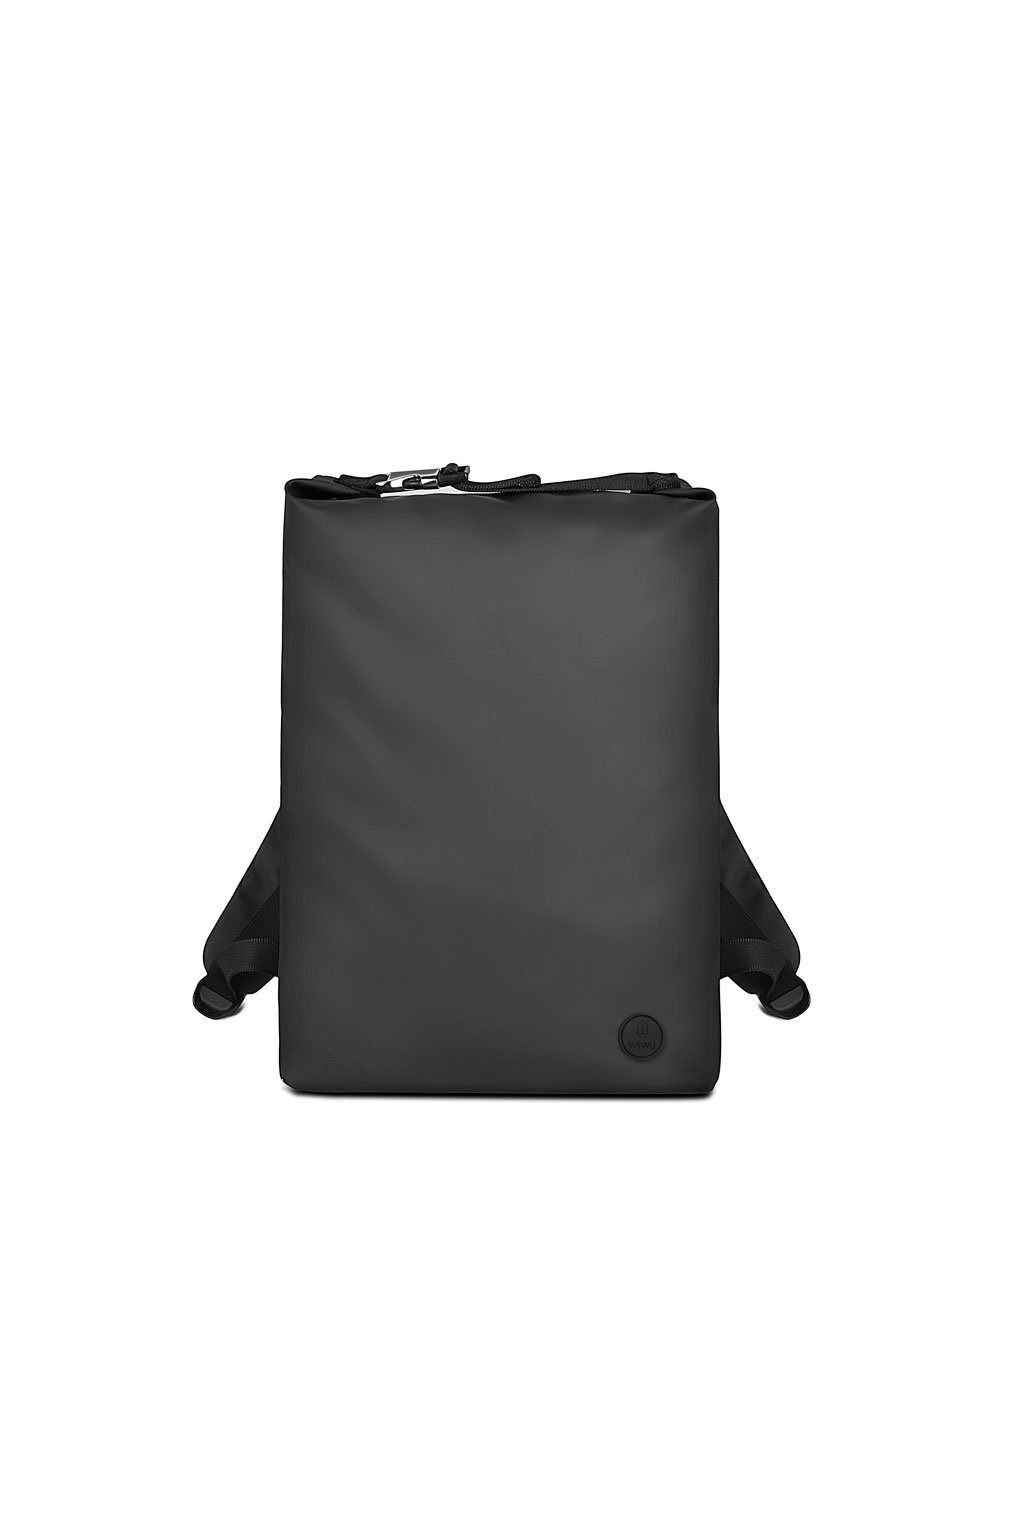 WiWU Ultralehký batoh na laptop Lightweight Backpack